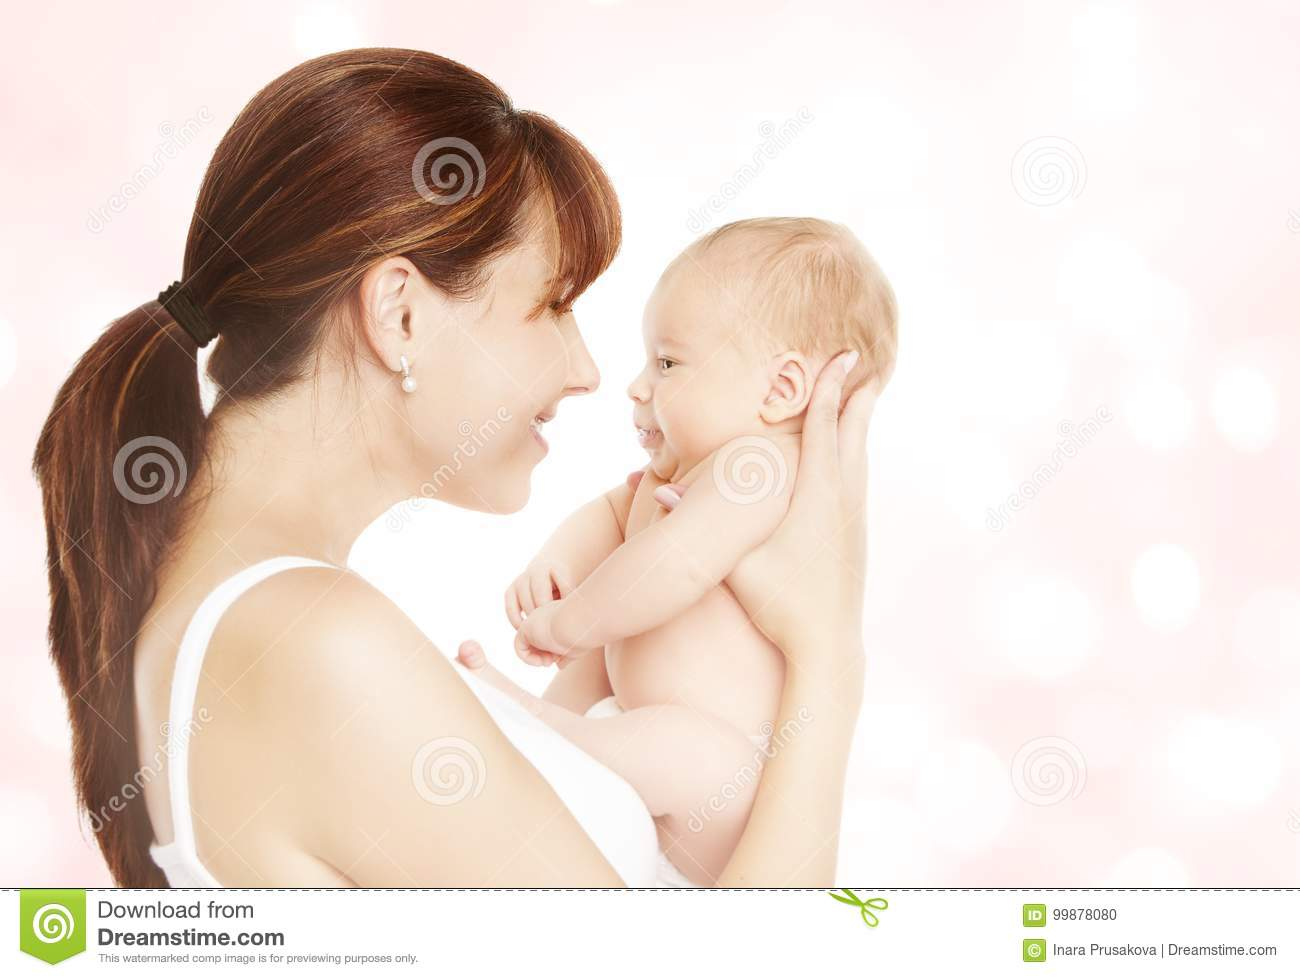 Download Mother And Newborn Baby, Mom Looking To New Born Child Stock Photo - Image of family, hold: 99878080